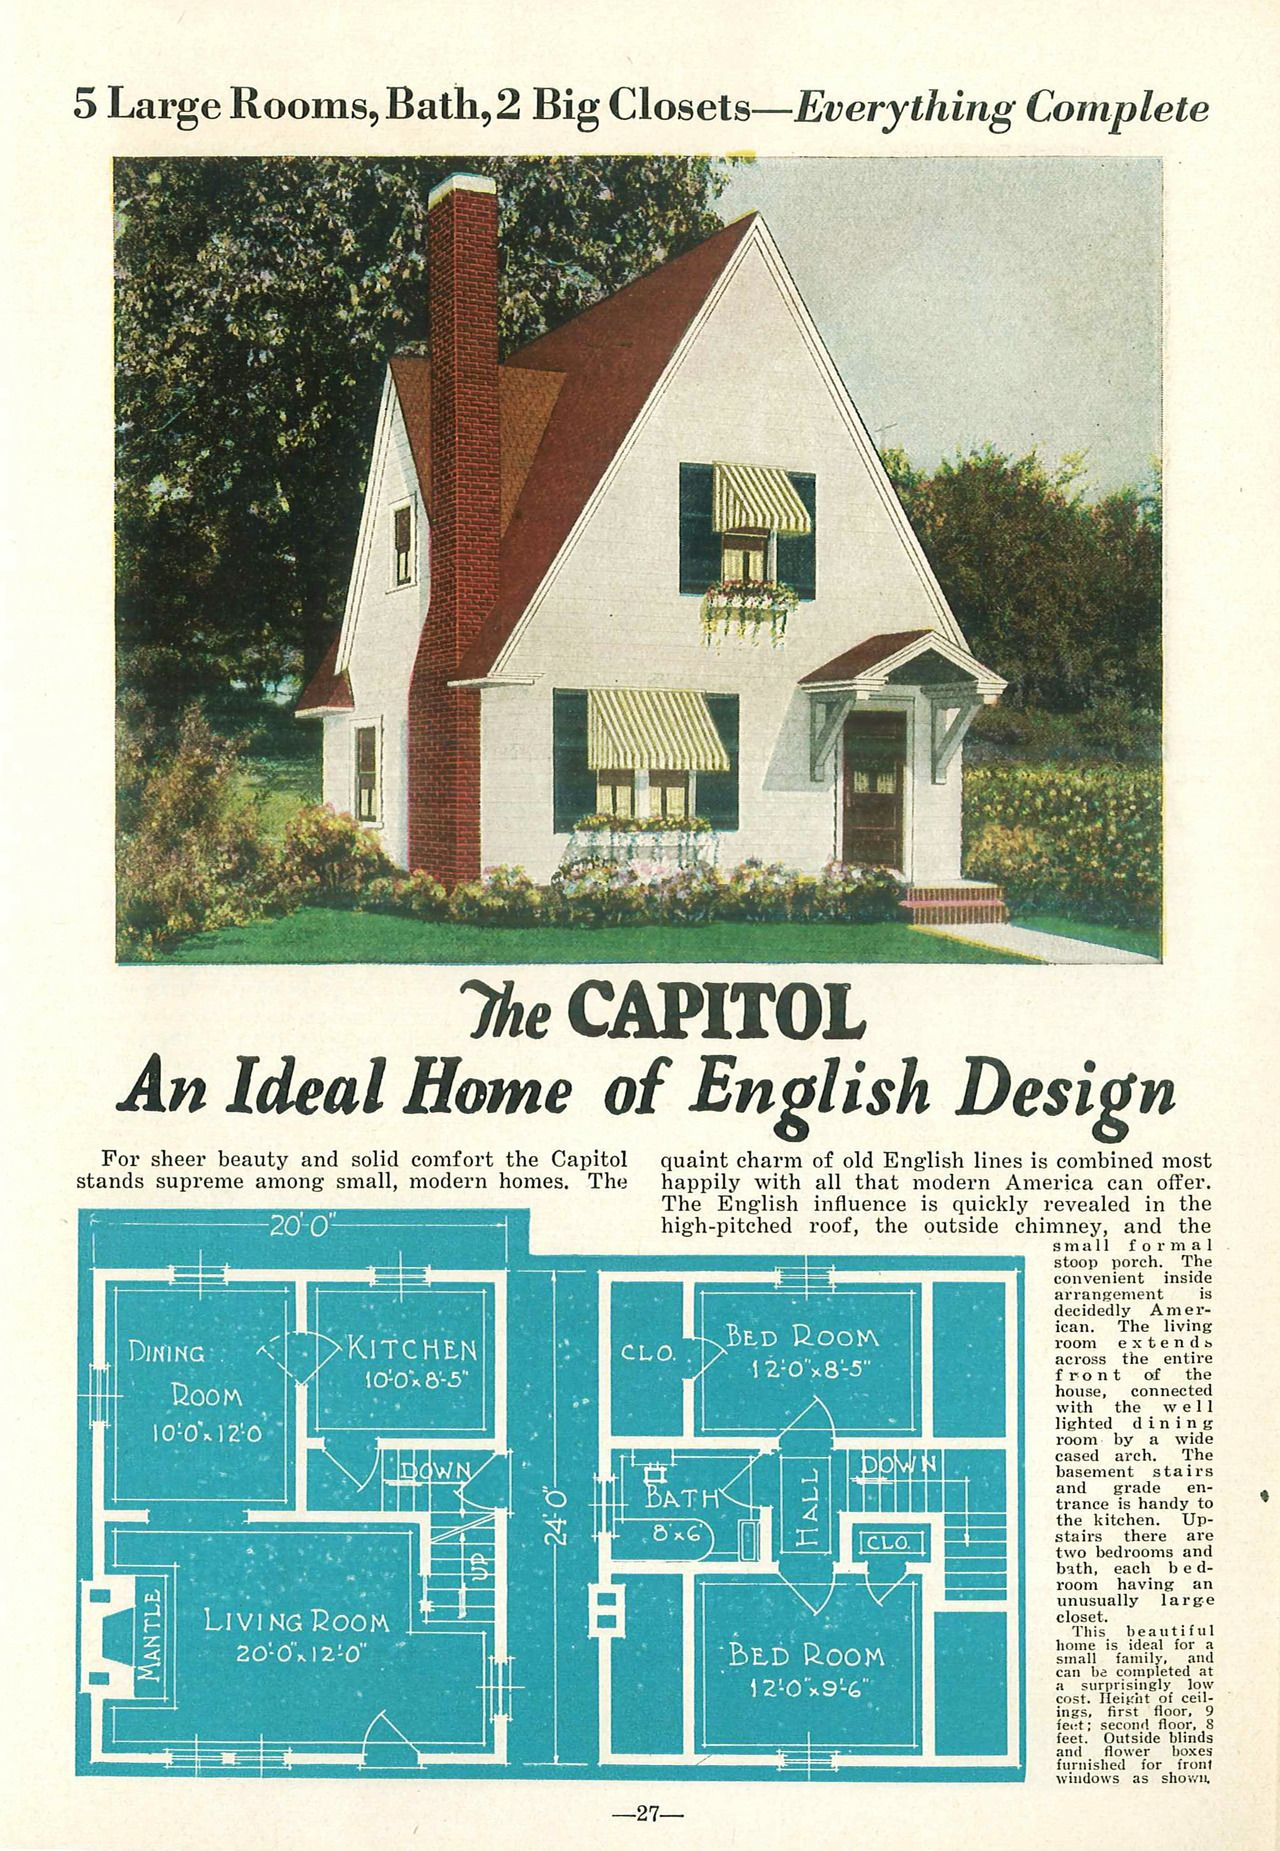 A 1 5 Story House With A Steeply Peaked Gable Roof The Text Describes It As English Although The Style Is Mo Liberty Home Vintage House Plans Storybook Homes